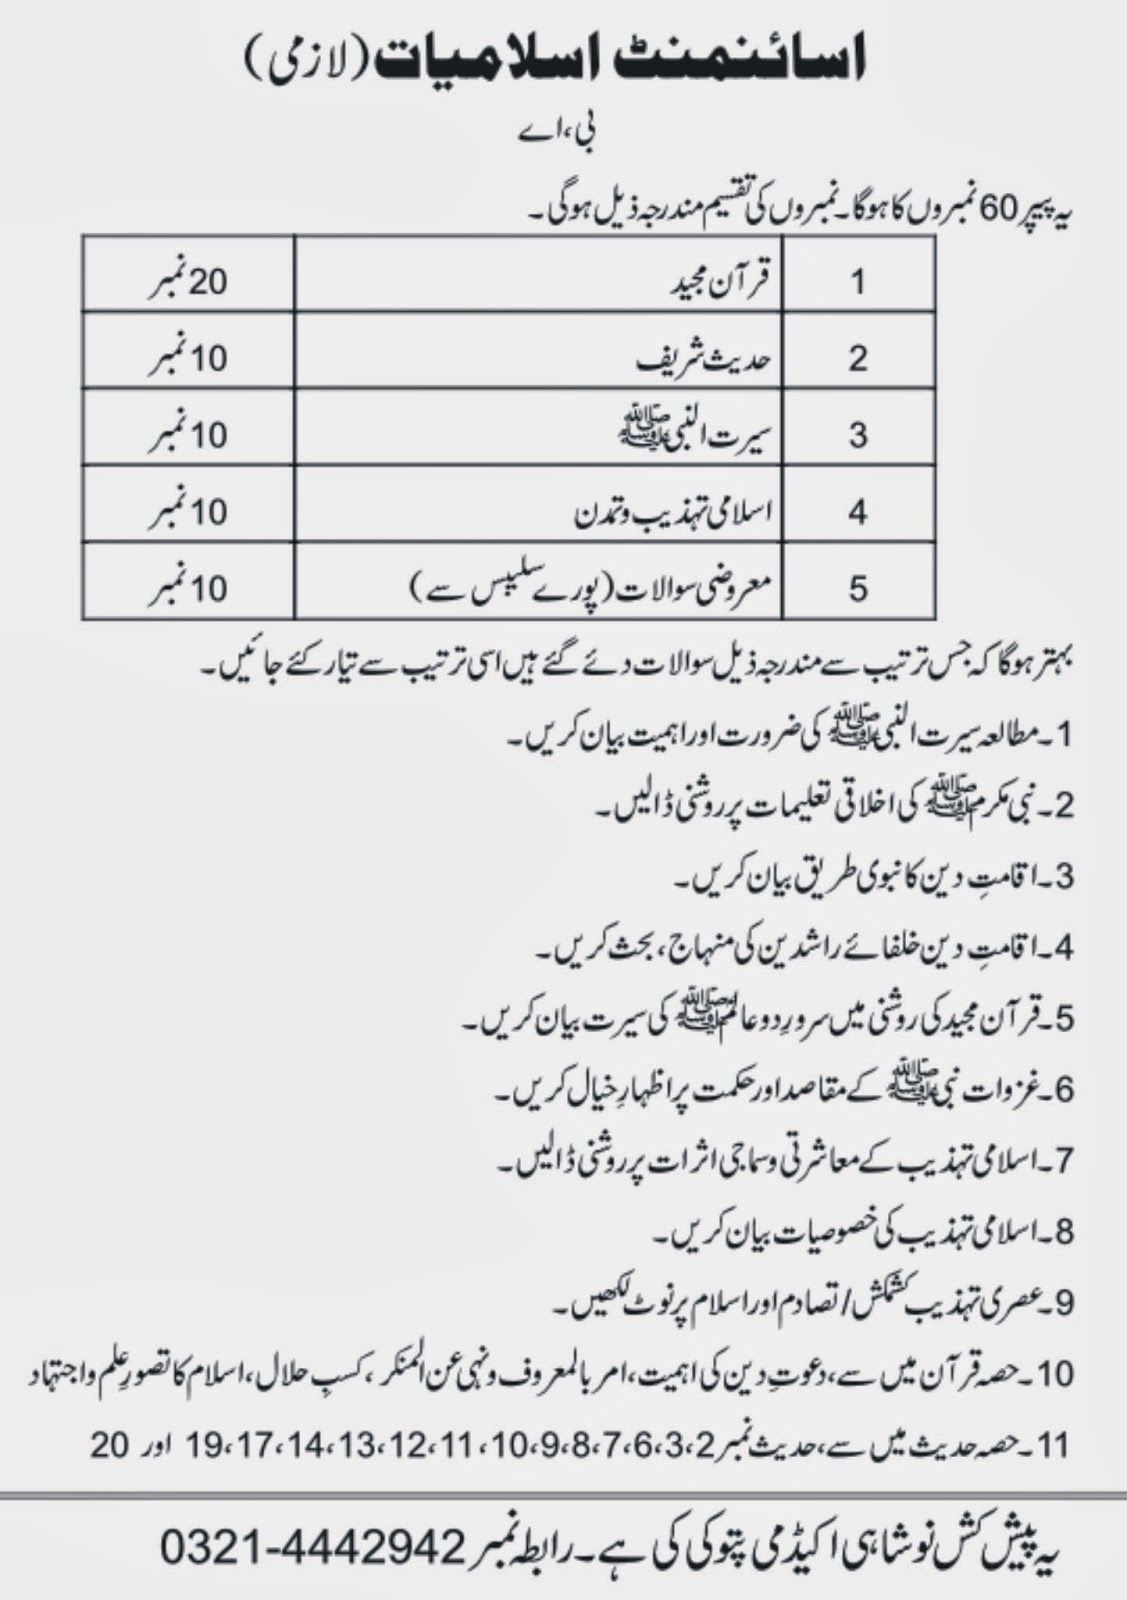 B.A. Isl. St. (Compulsory) for the Annual Exam. 2014